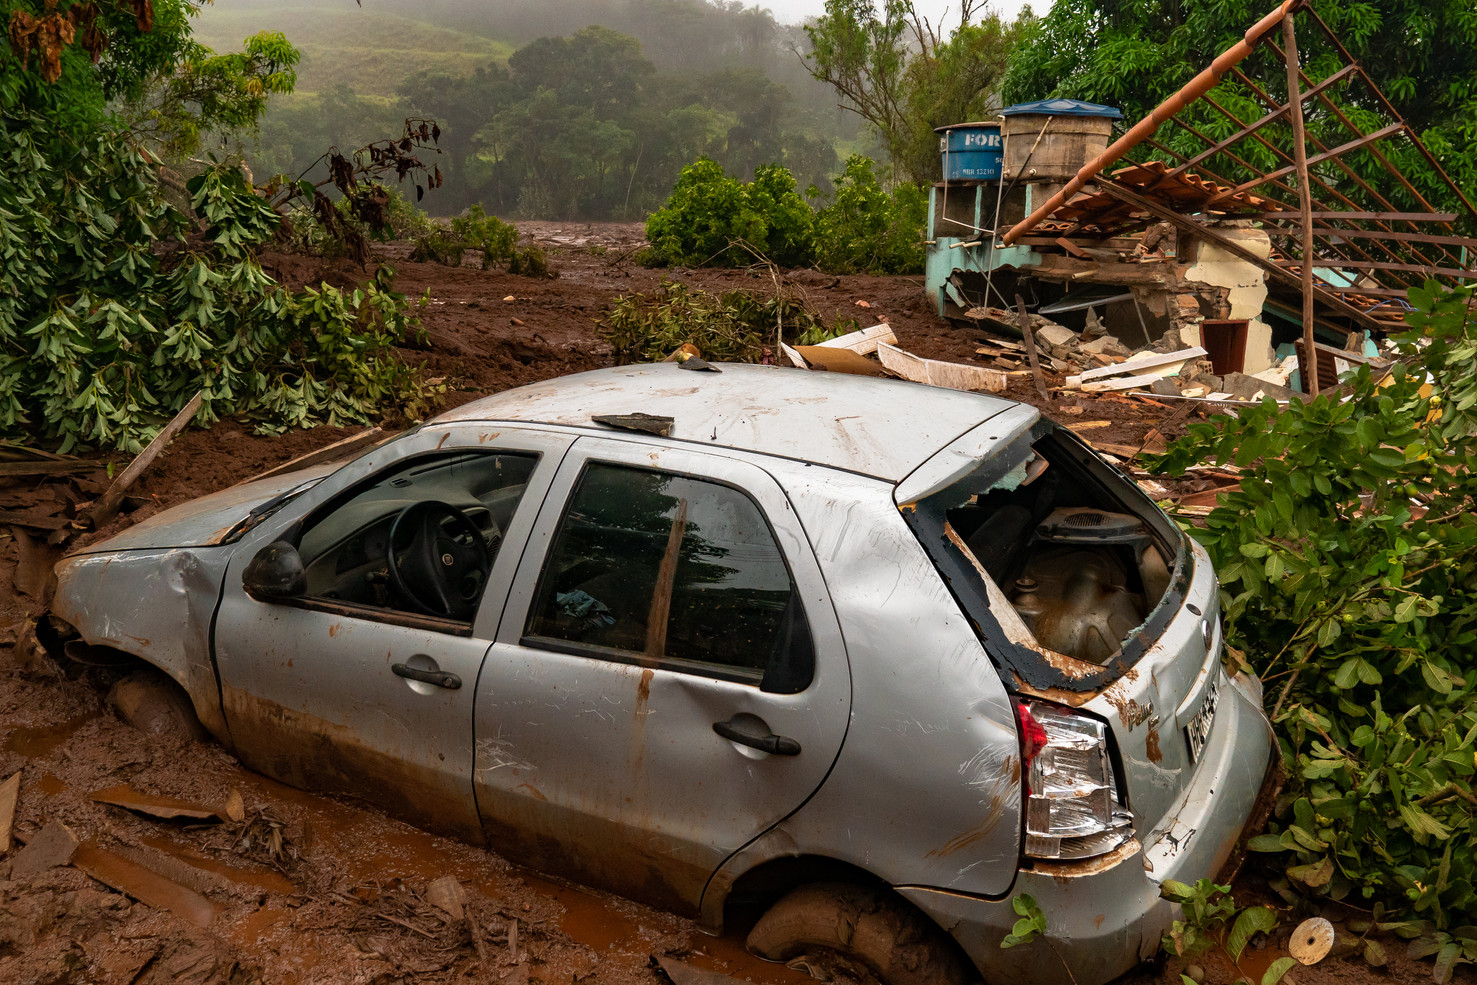 The worst social environmental tragedy of Brazilian history was the mining dam collapse from Vale S.A. (the world's largest iron ore producer) that poured its mud on the residents of Brumadinho and also killed the Rio Paraopeba, January 24, 2019.   These photographs are the registers of ten consecutive days in the regions affected by the disaster (01/26 to 02/02 of 2019).